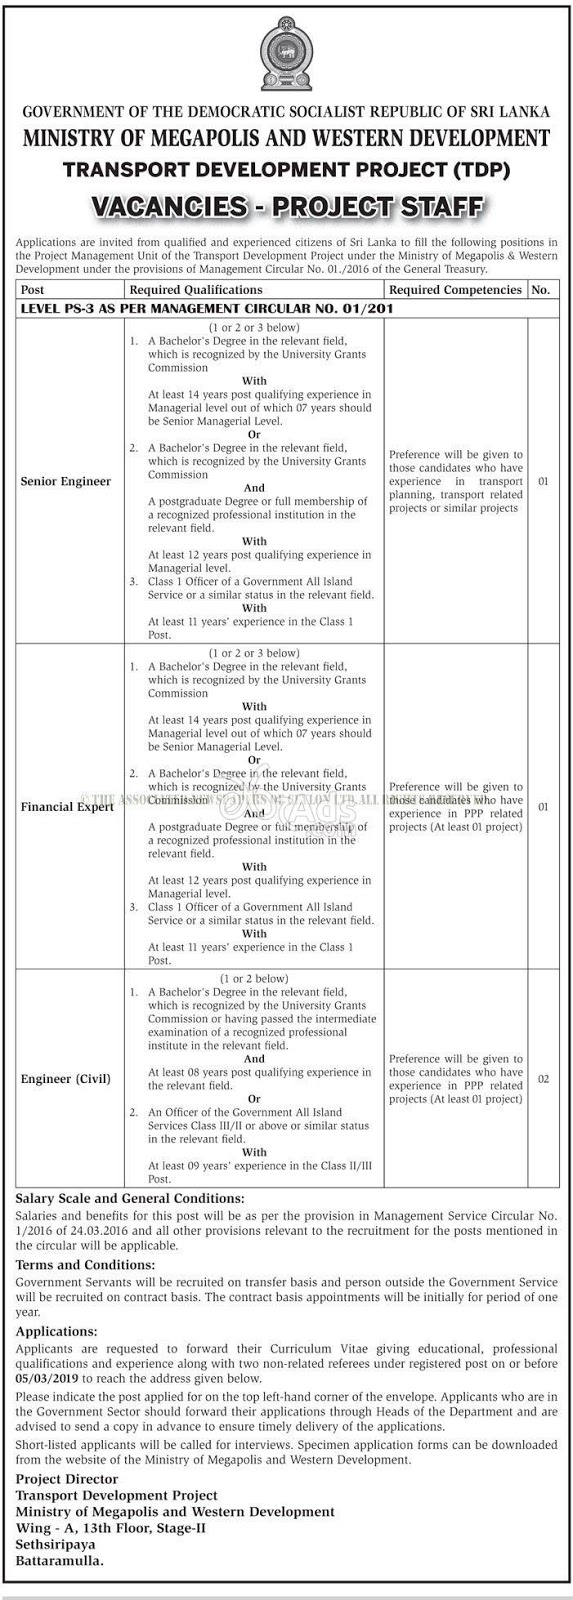 Vacancies at Ministry of Megapolis and Western Development